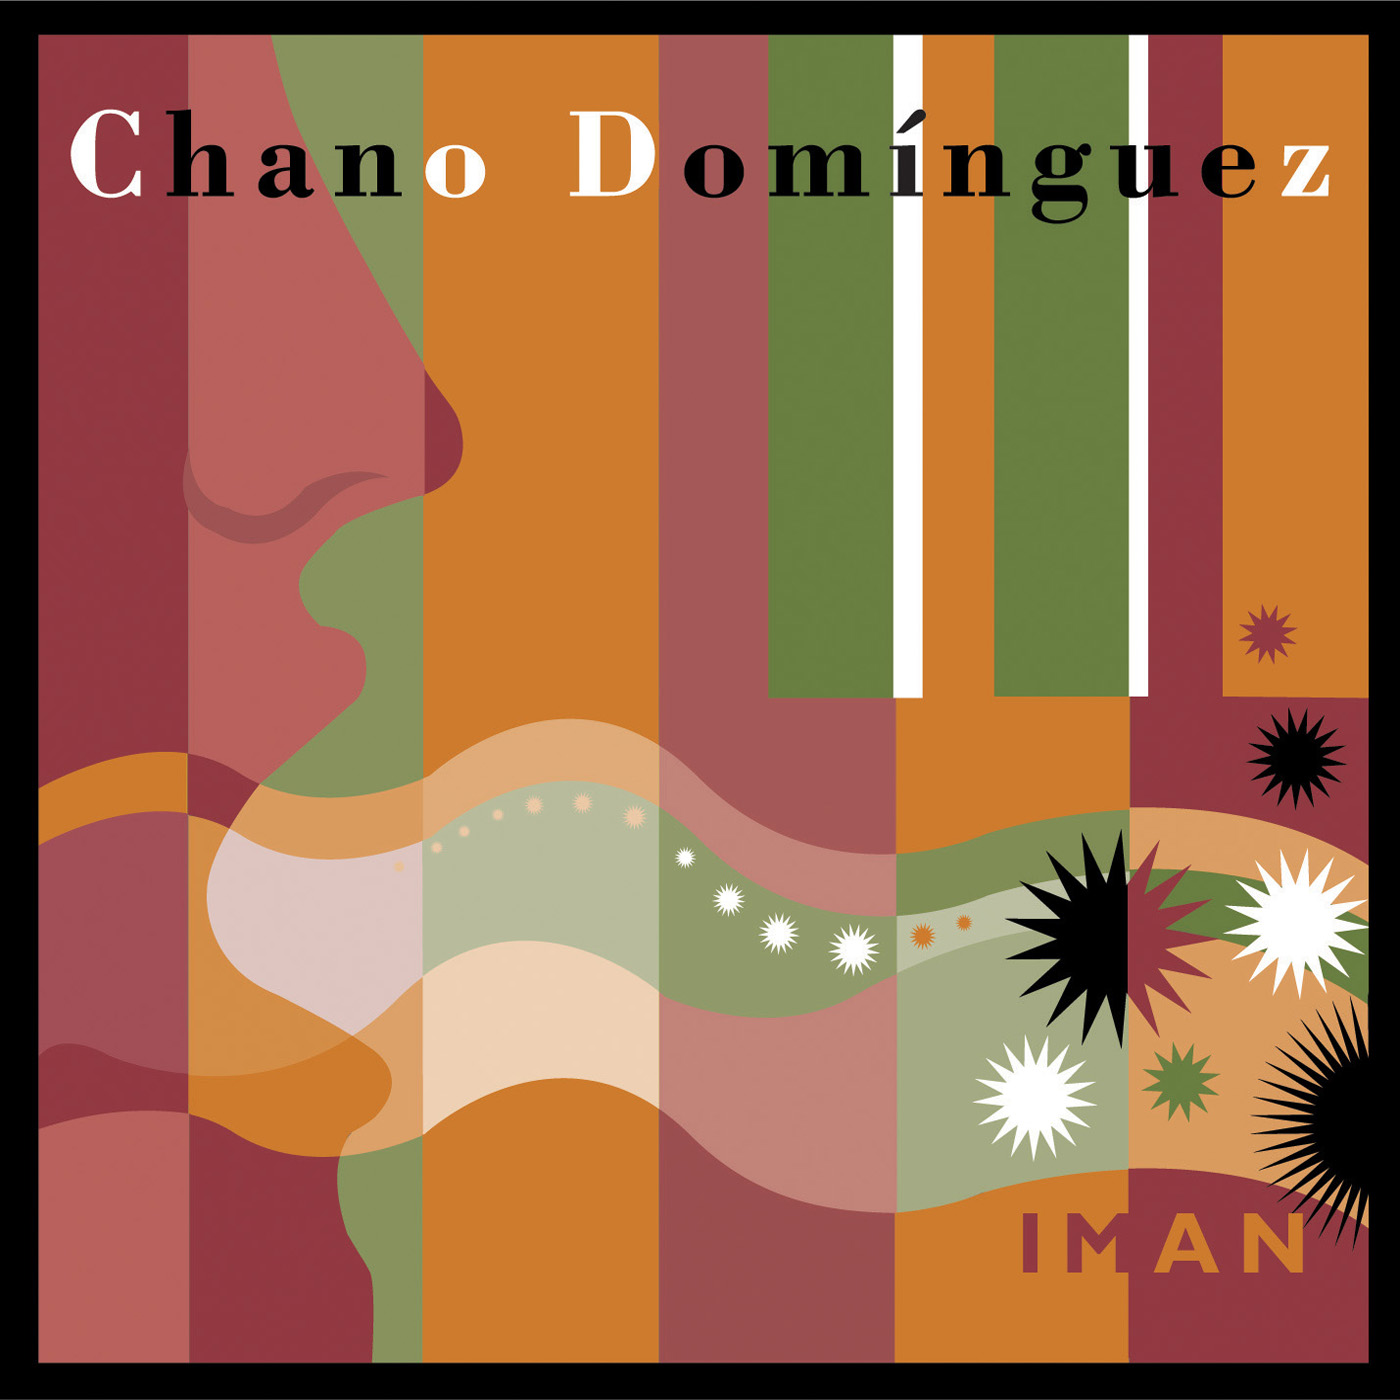 Iman by Chano Dominguez cover